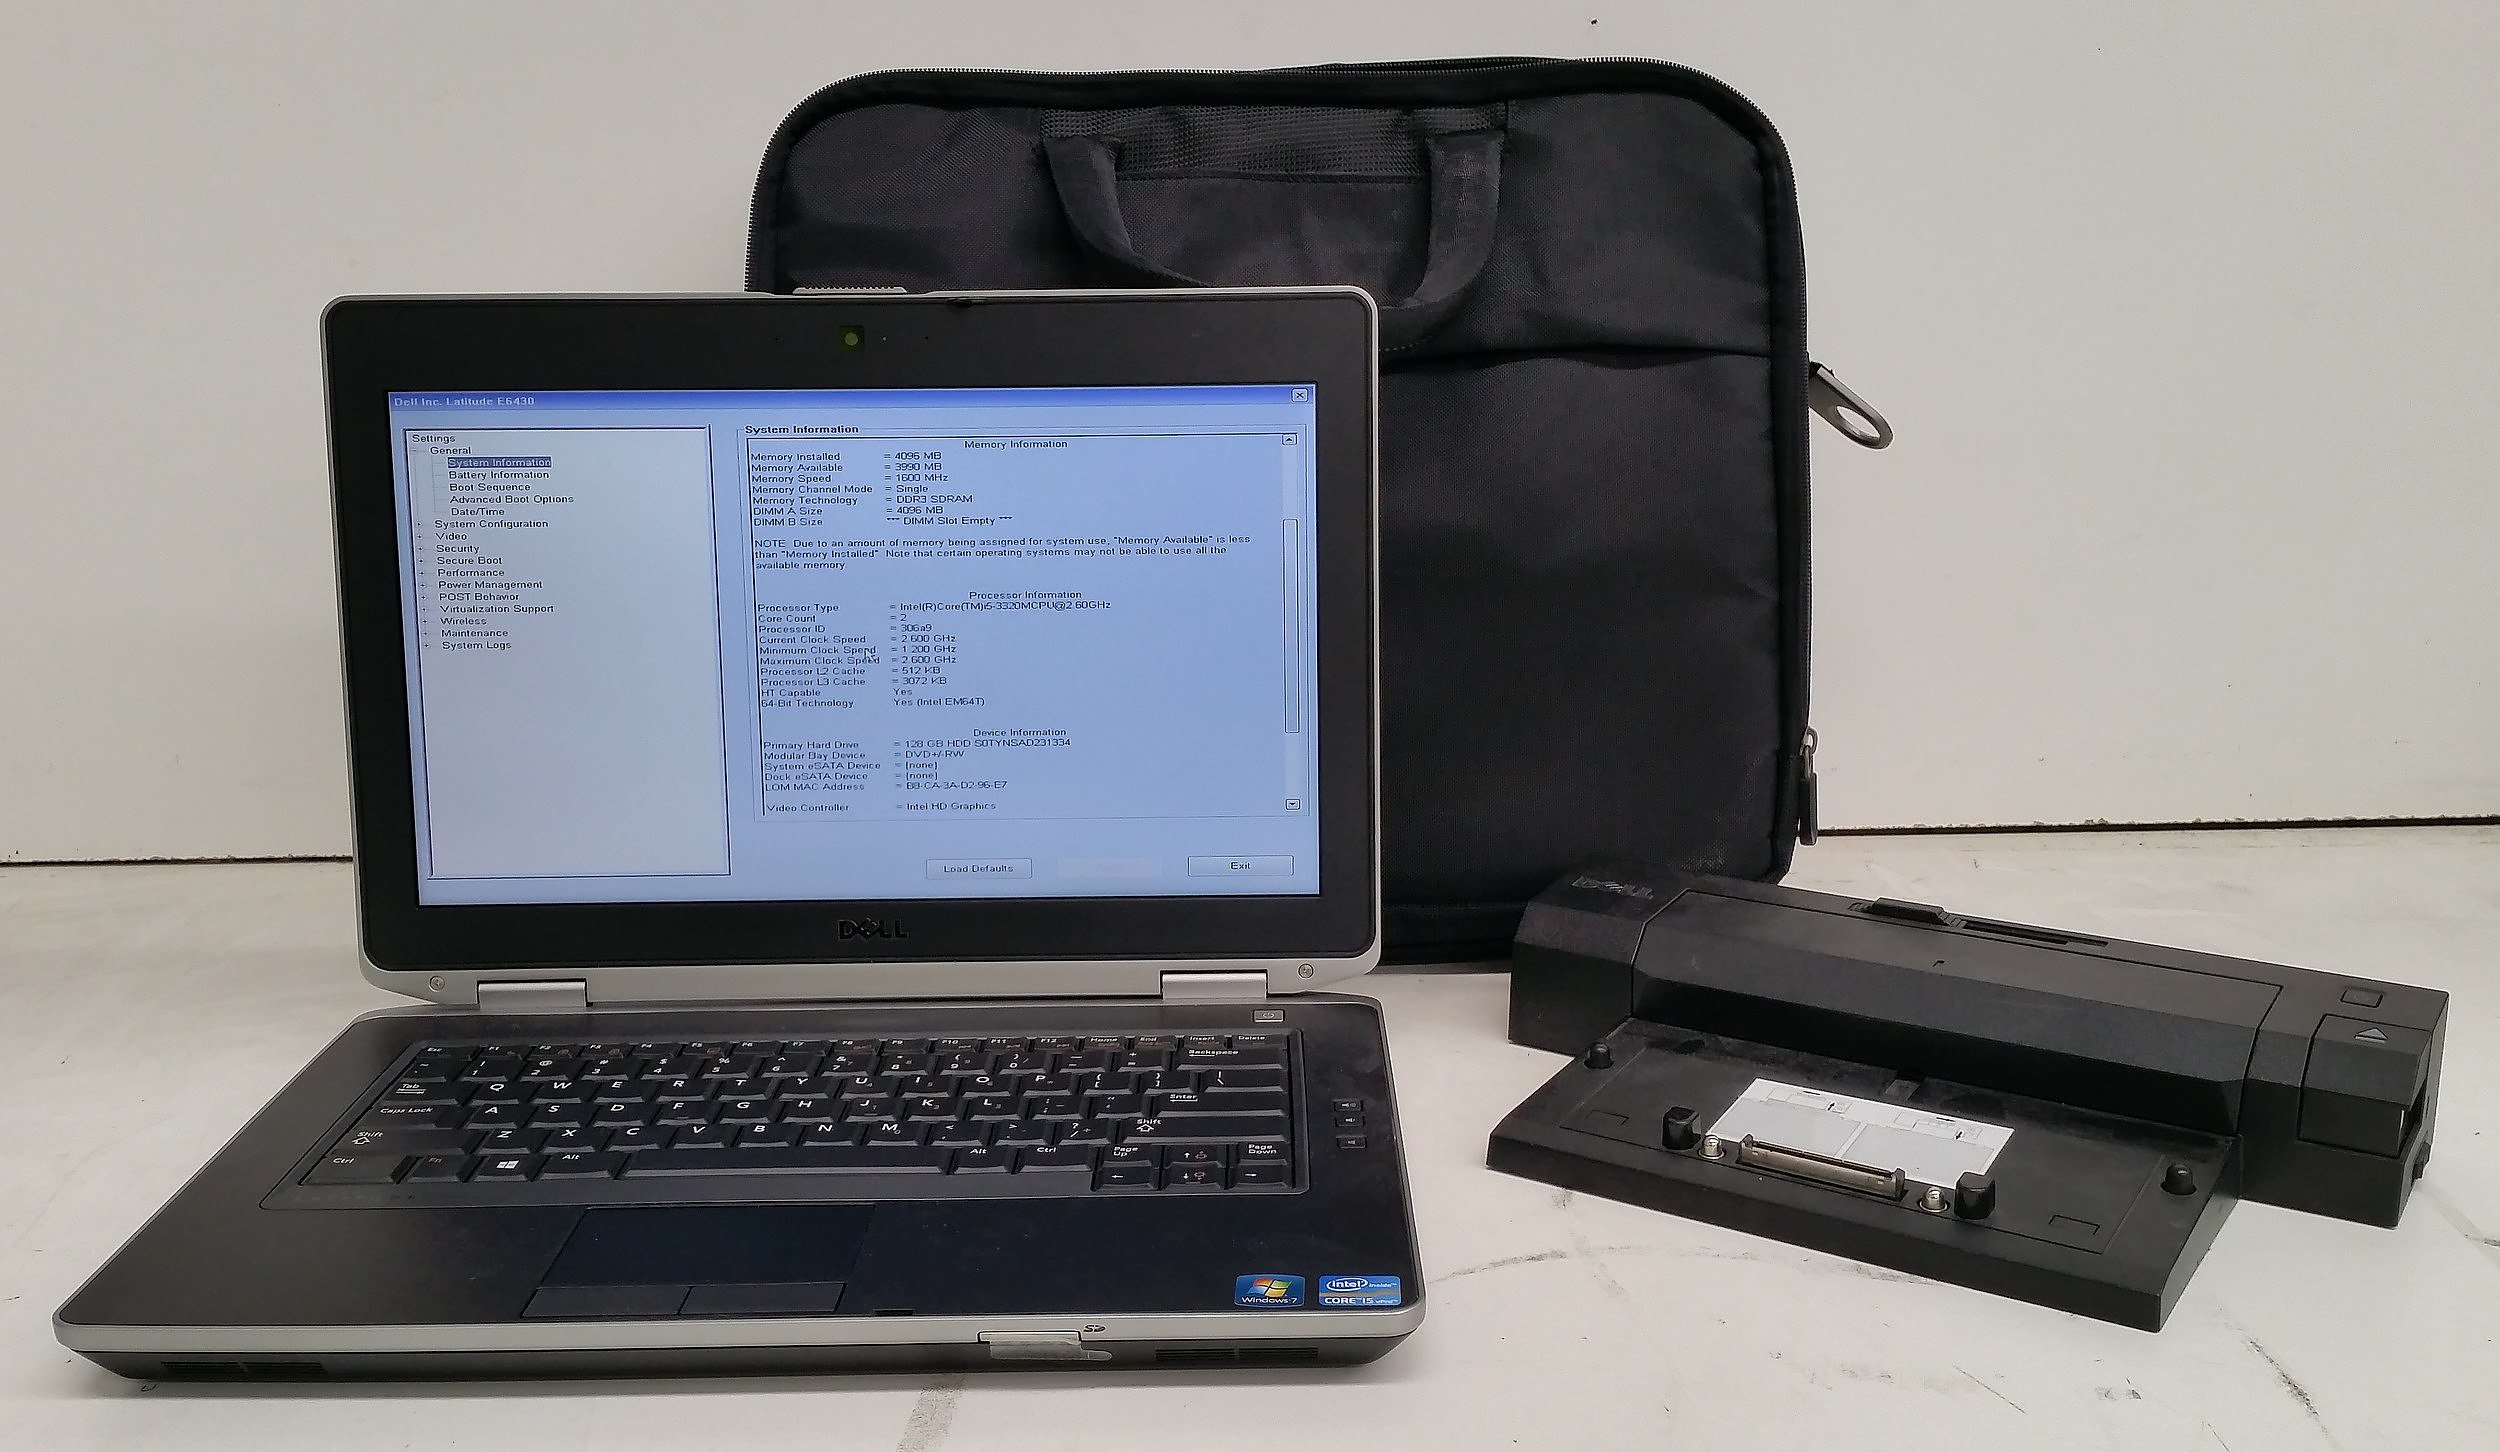 Try These Dell Latitude E6430 Wifi Driver For Windows 7 32